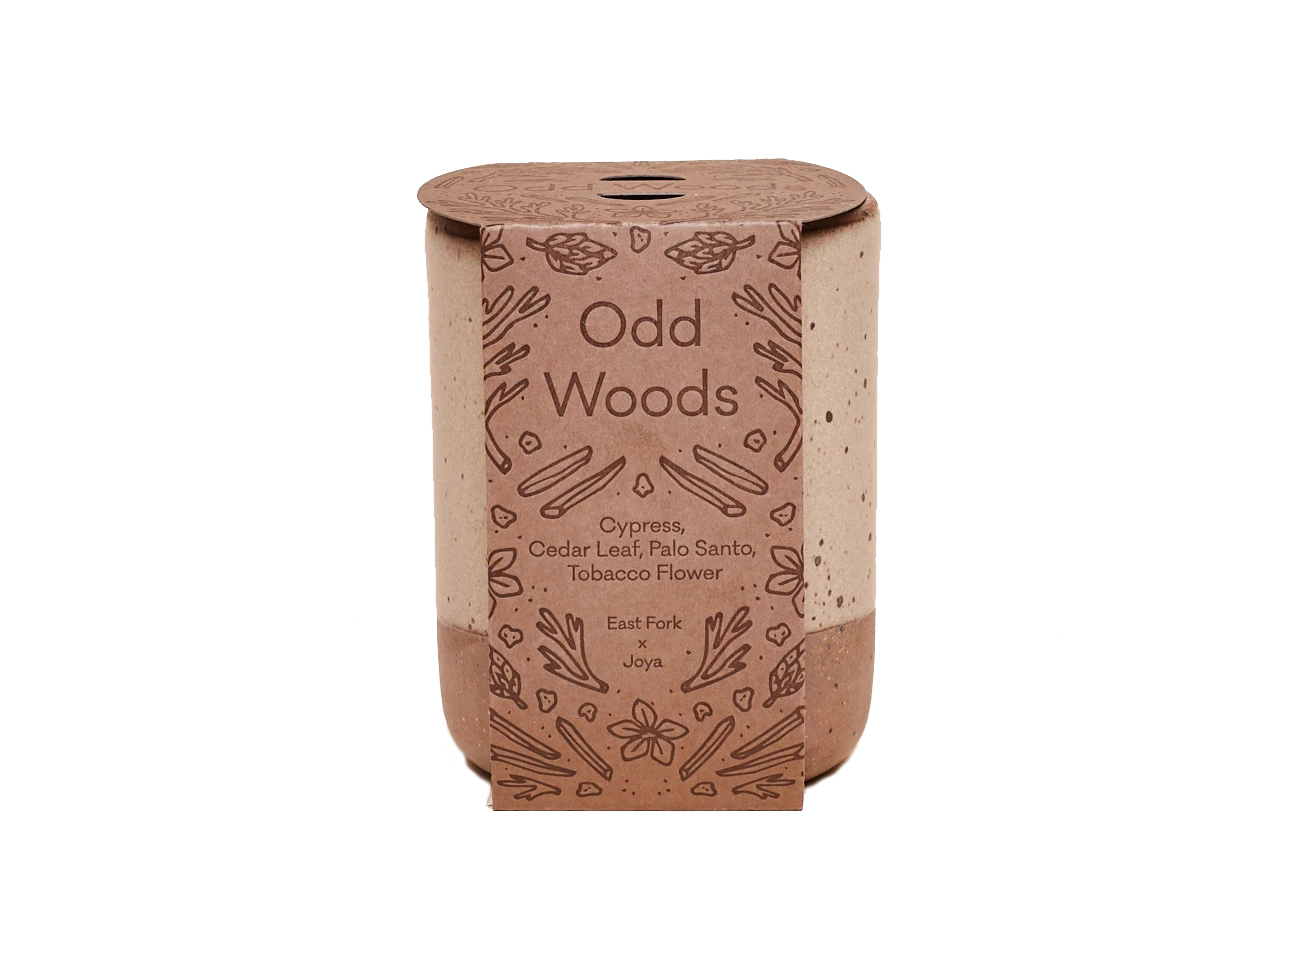 Odd Woods Candle